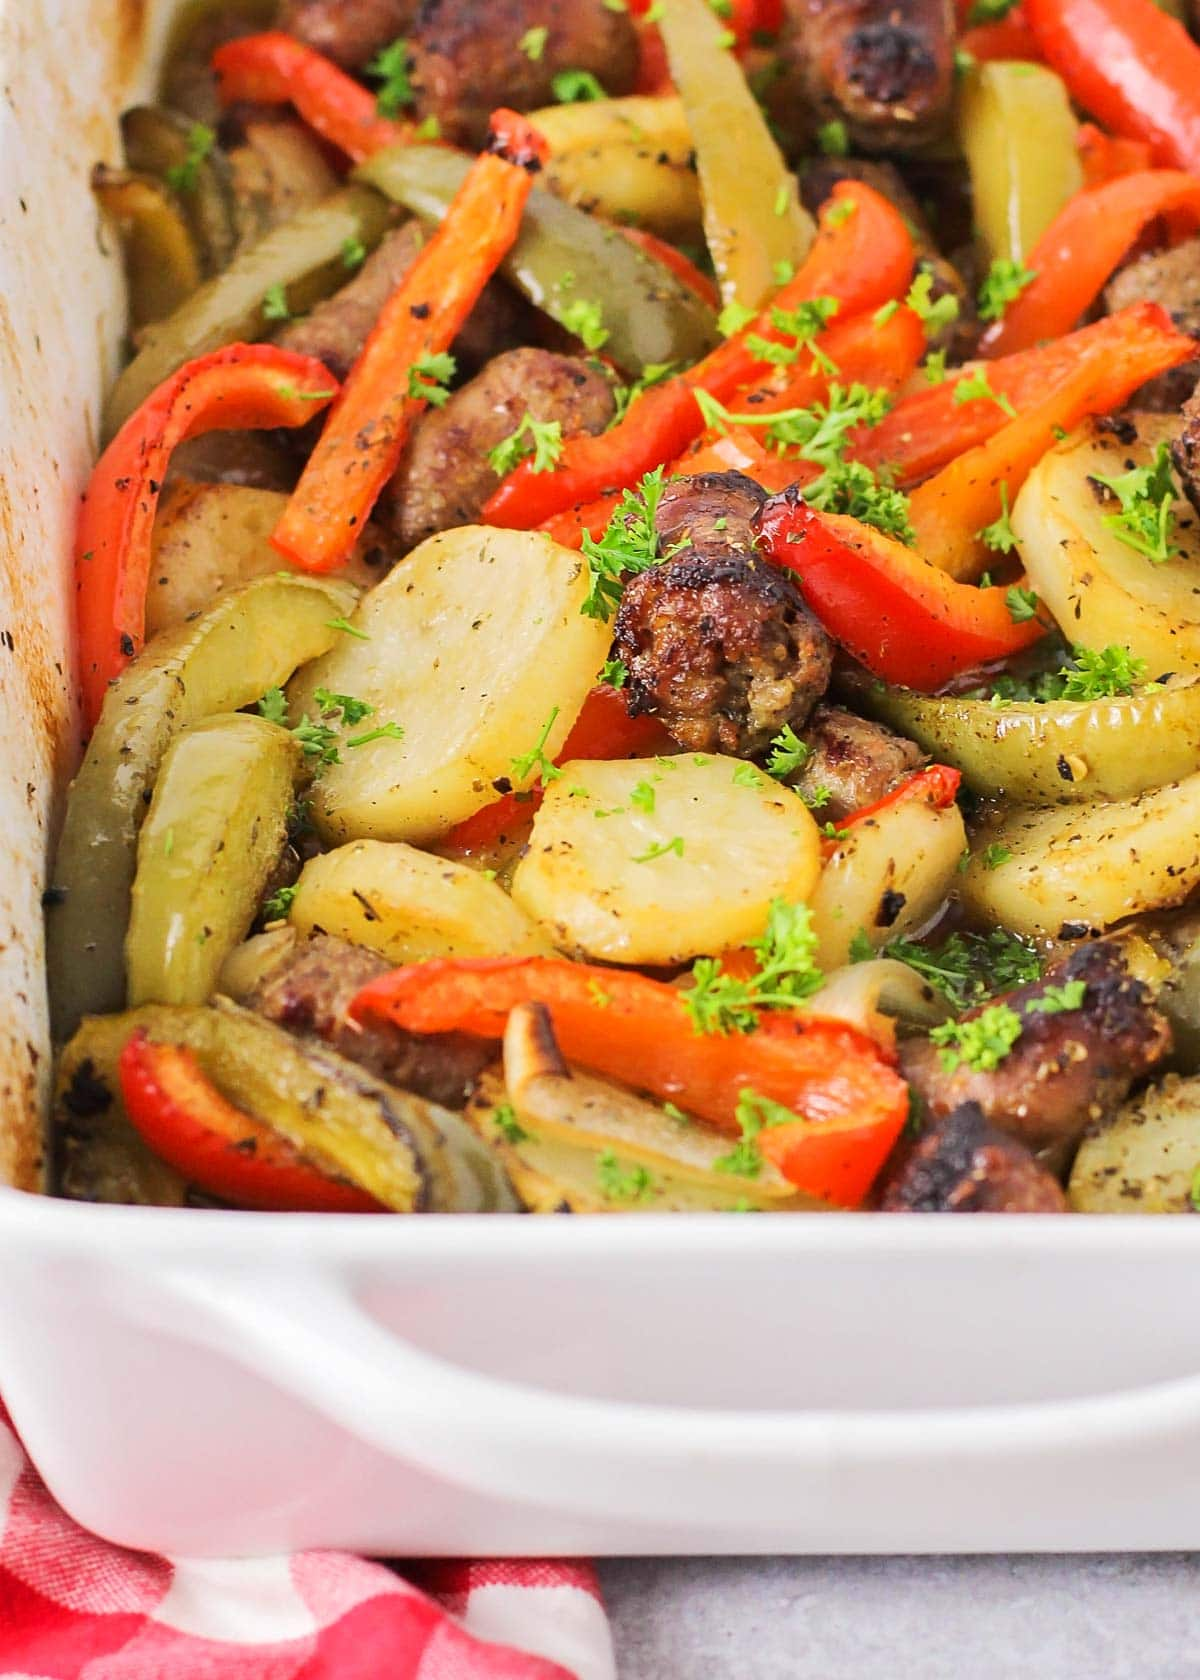 Sausage and potatoes baked in a white casserole dish.